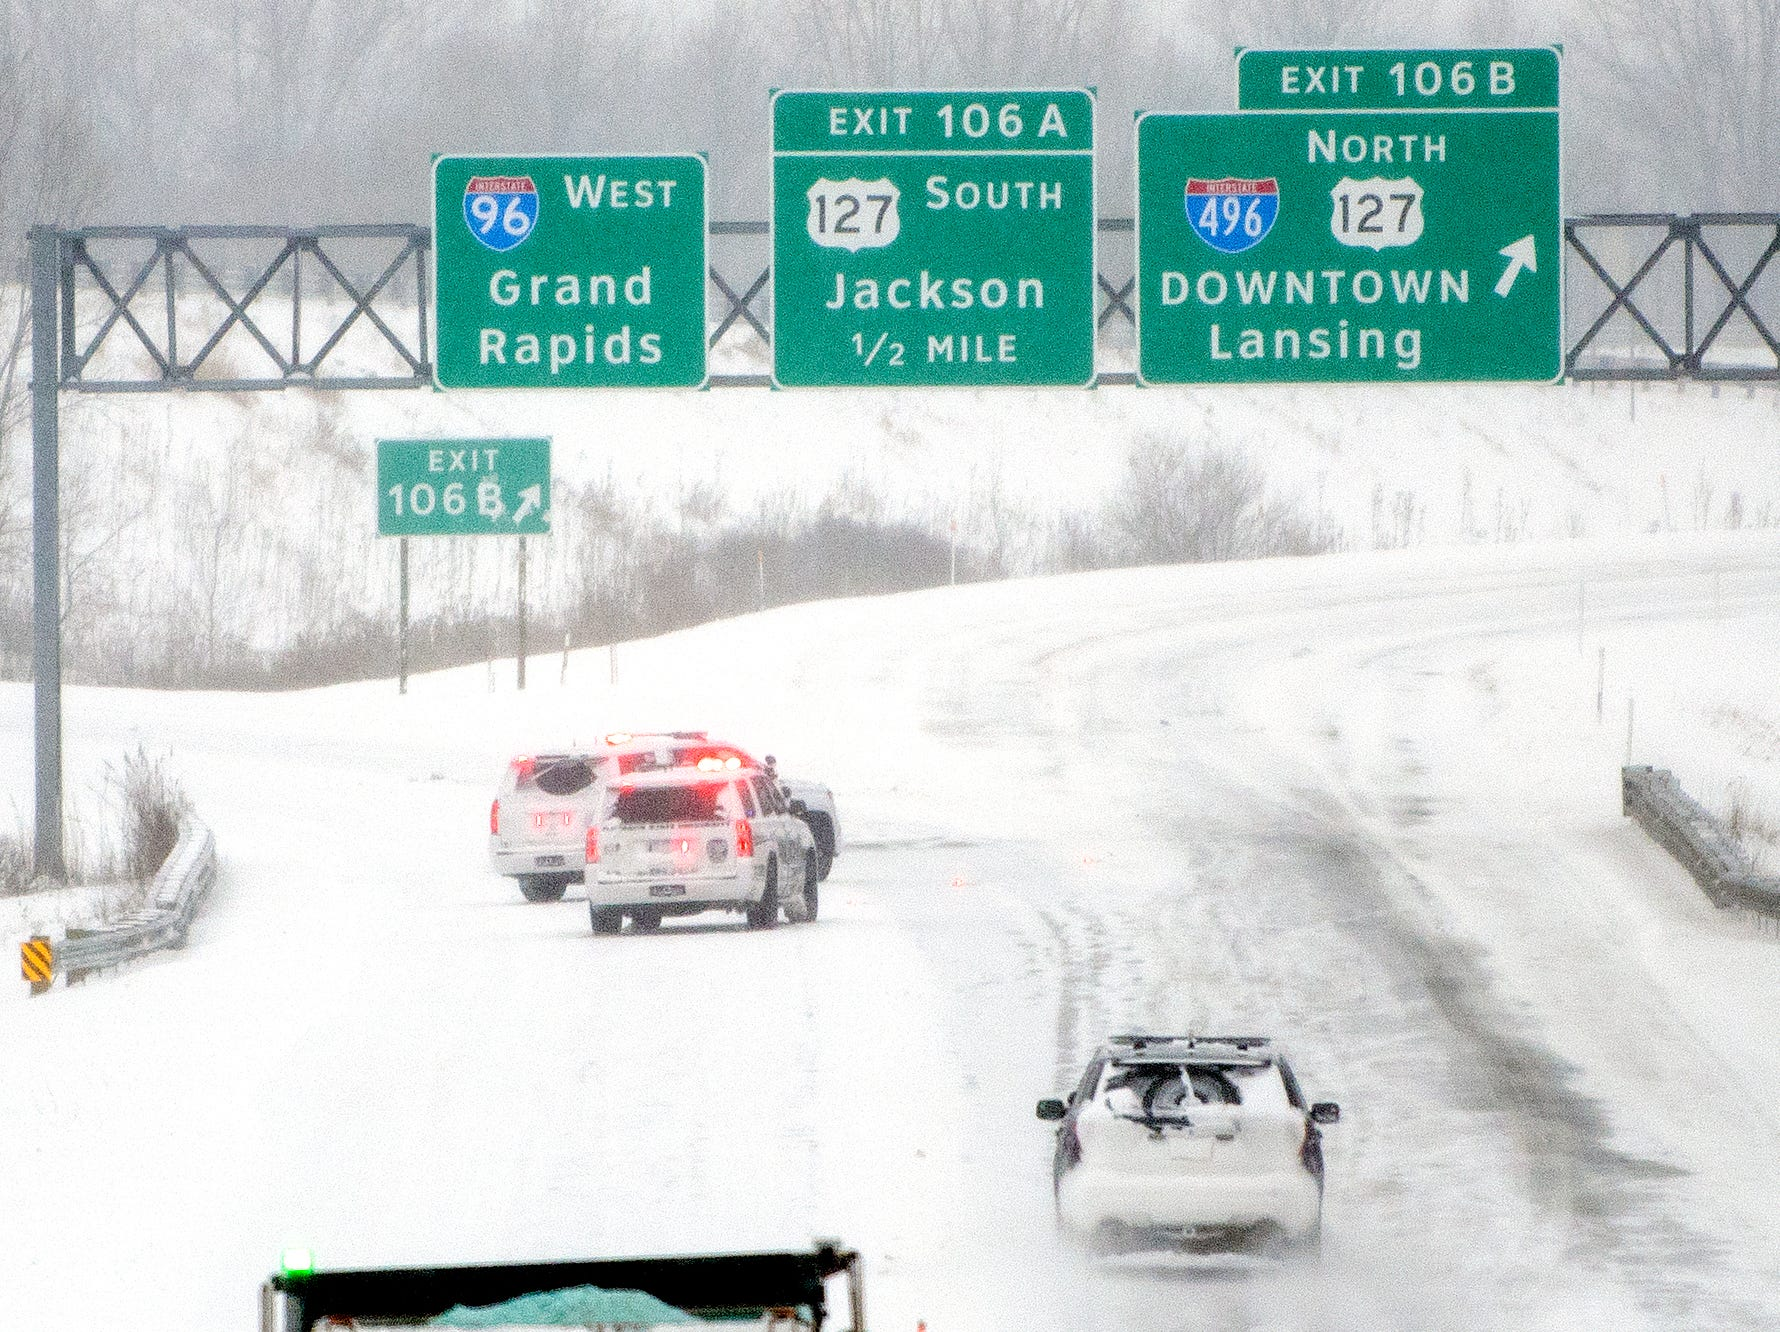 Ingham County Sheriff's Office deputies block the Interstate 96 exit on northbound U.S. 127 due to a crash on Monday, Jan. 28, 2019, in Lansing.